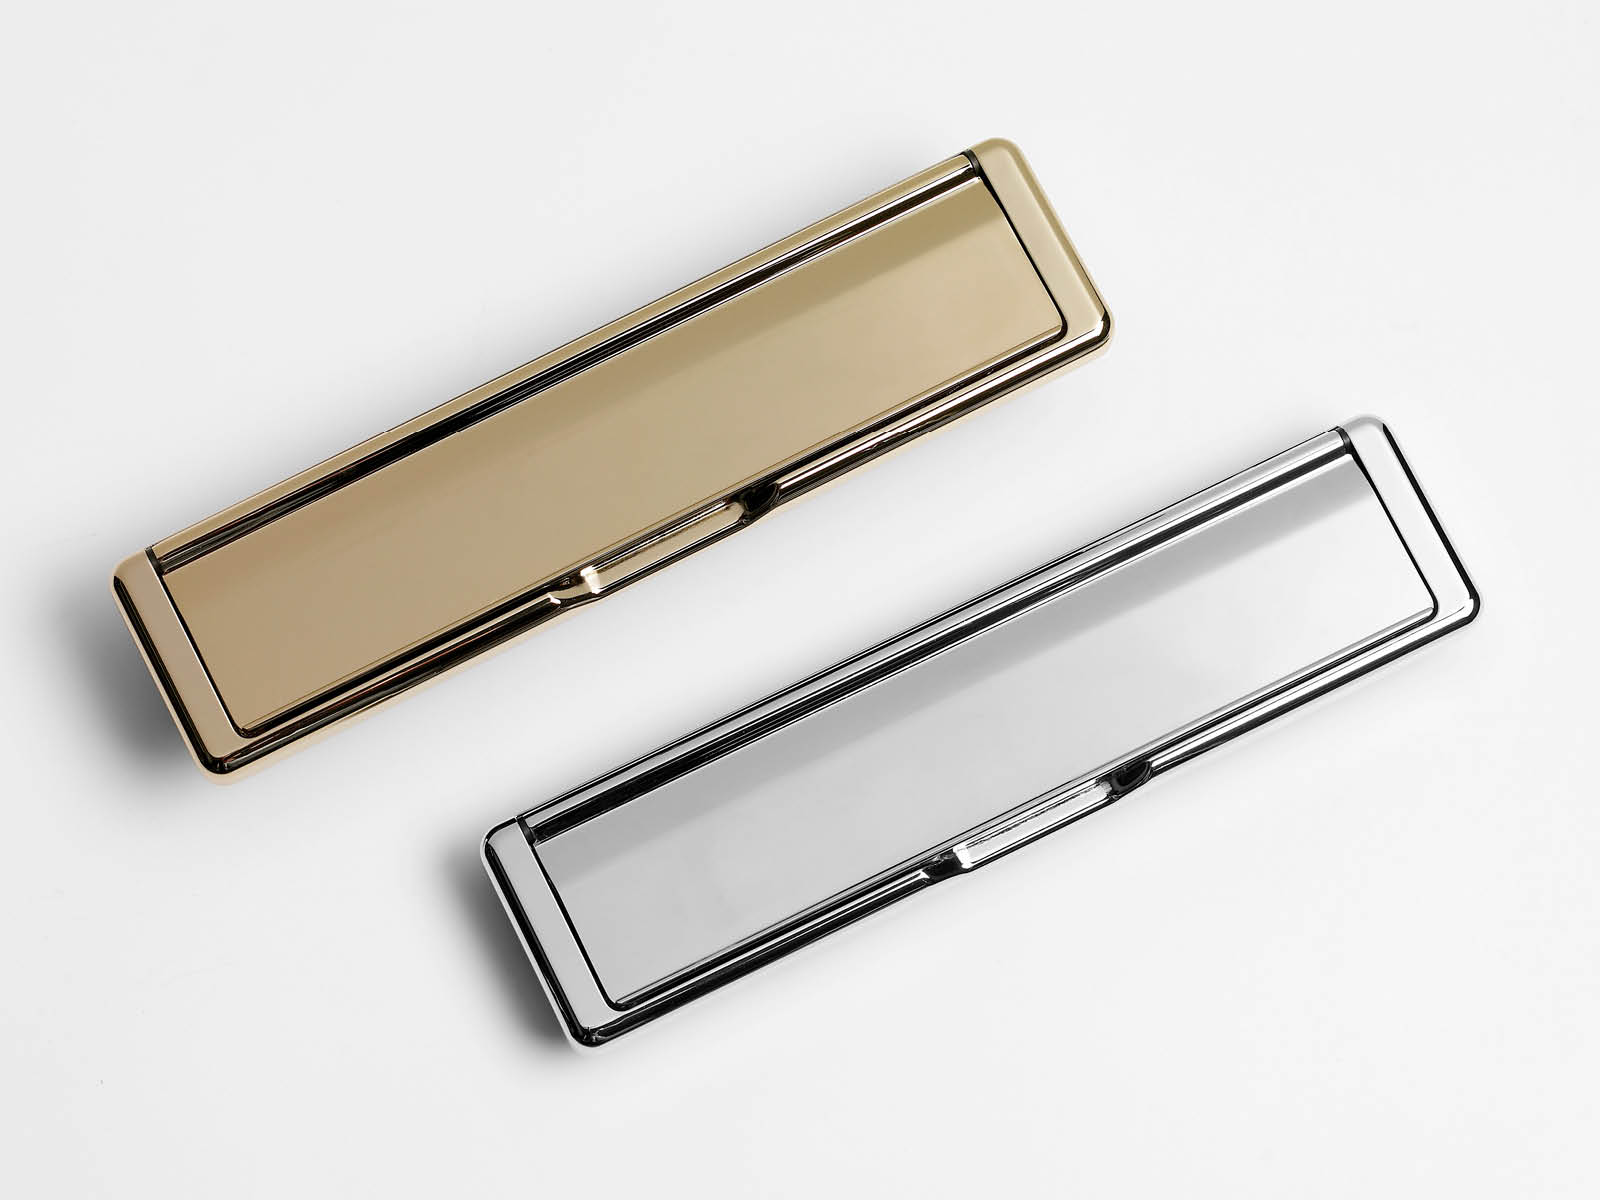 letterbox colour door furniture options showing gold and silver